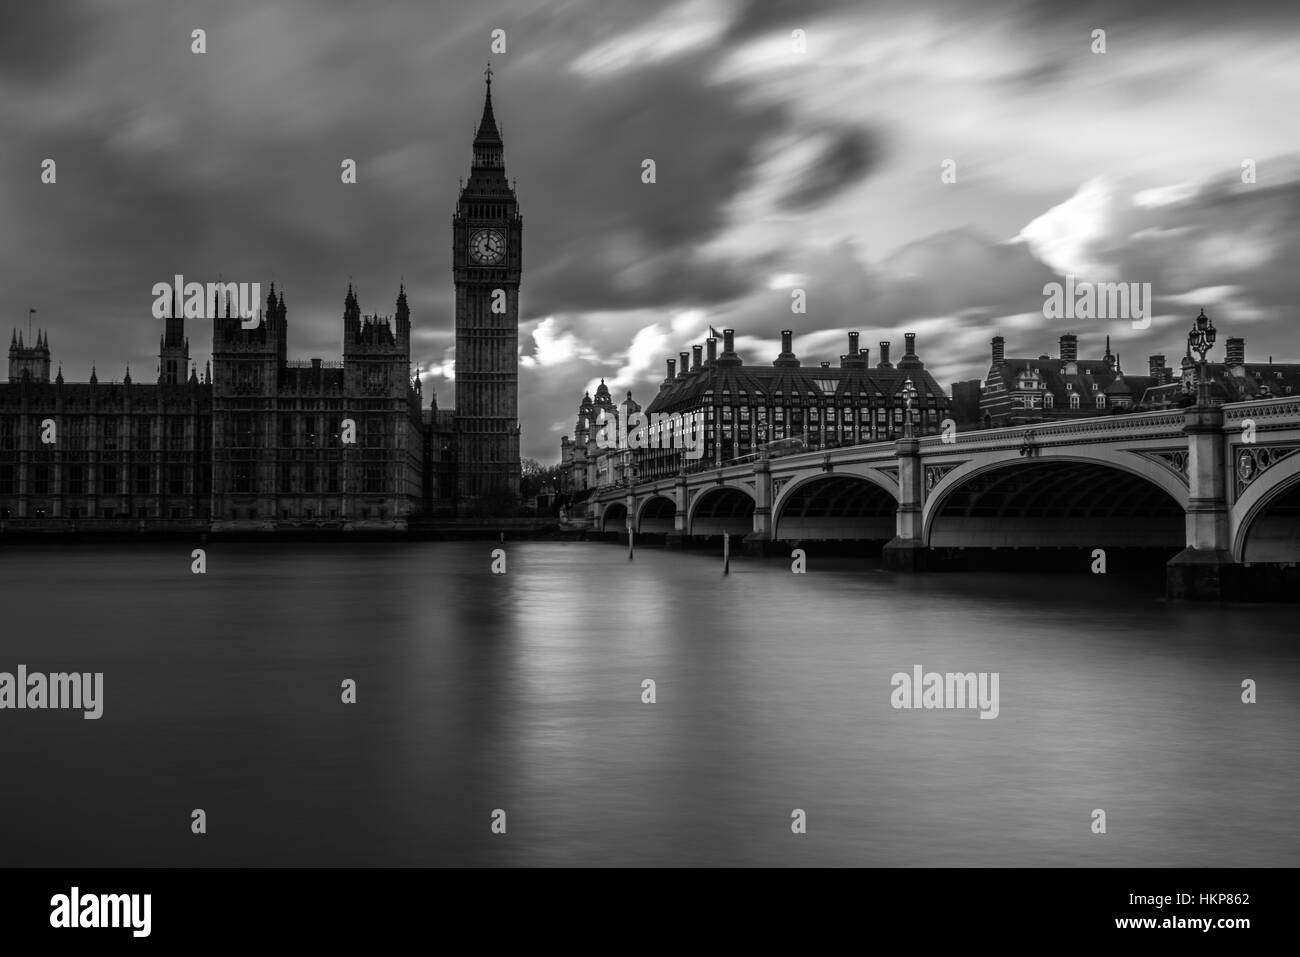 Big Ben and Westminster bridge in black and white - Stock Image